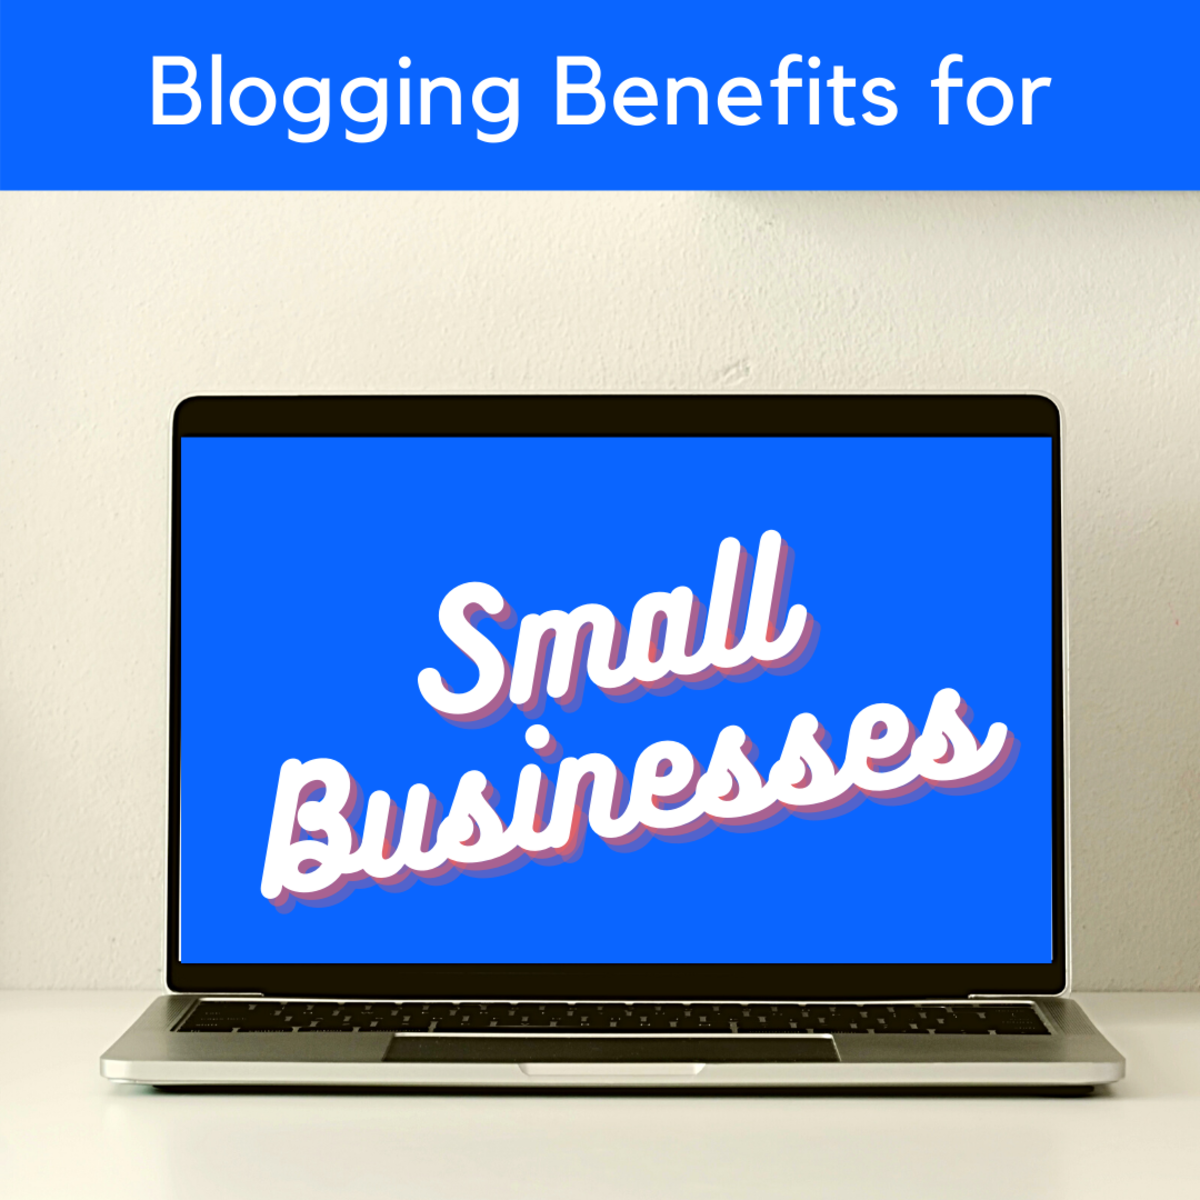 What are the benefits of blogging for small businesses?